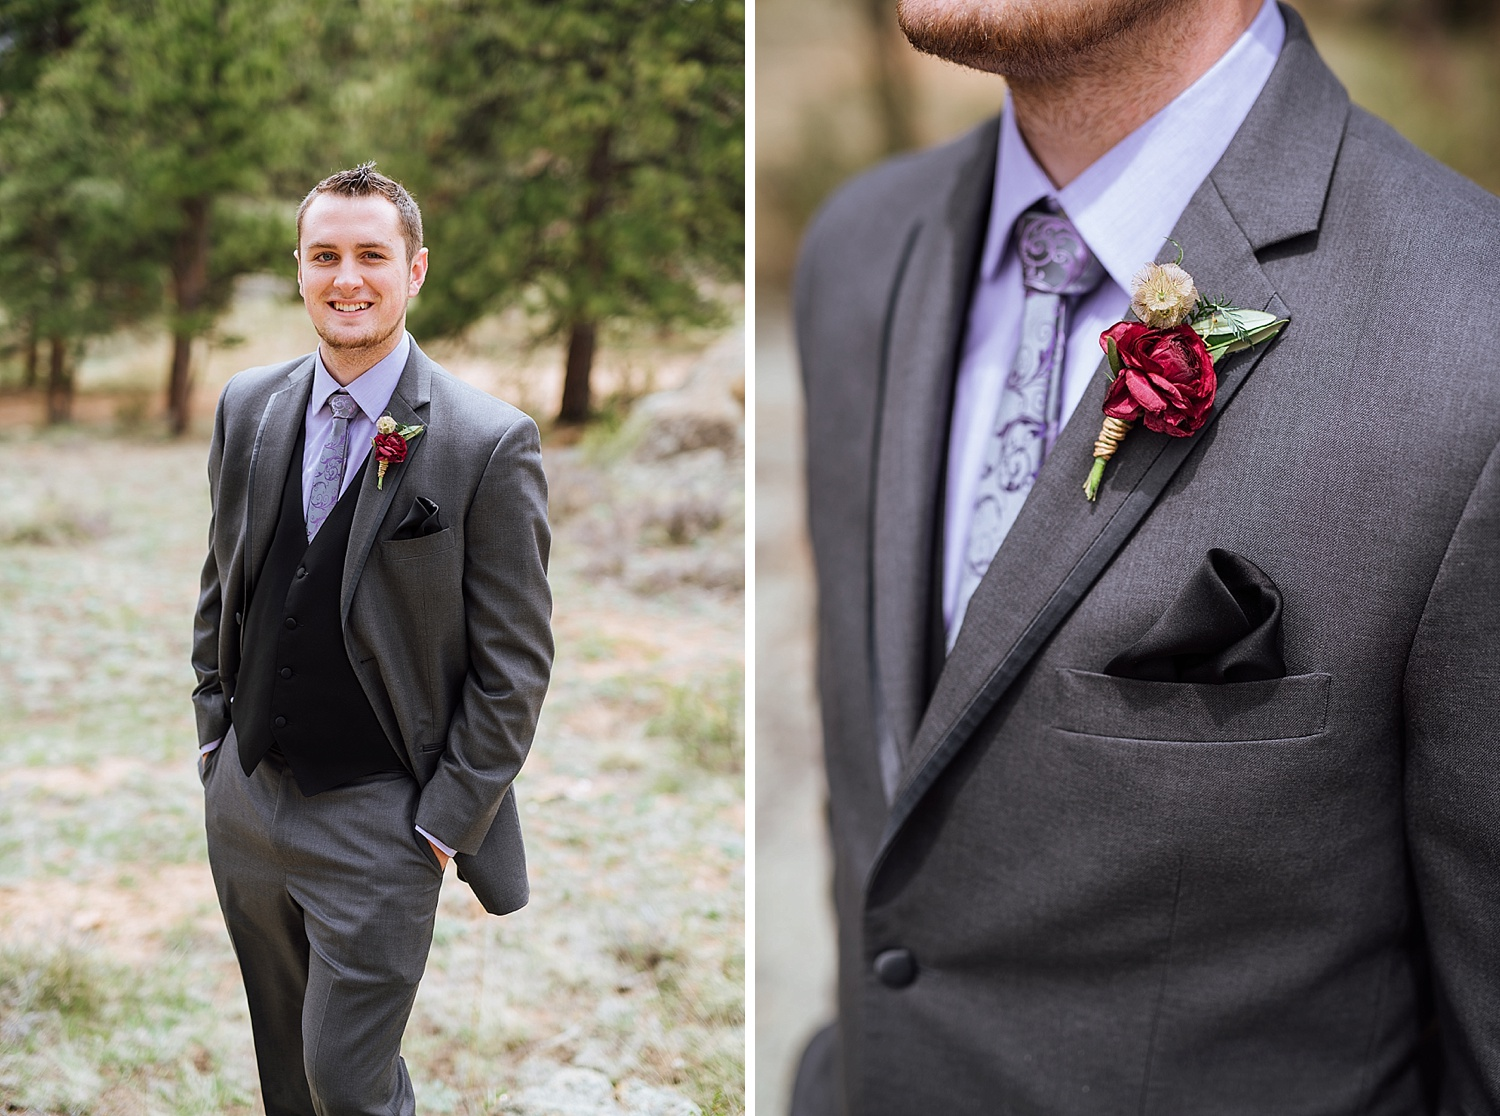 His wildflower boutonniere/boutineer is so cool! Definitely need to keep this in mind. Photo by Maddie Mae Photography